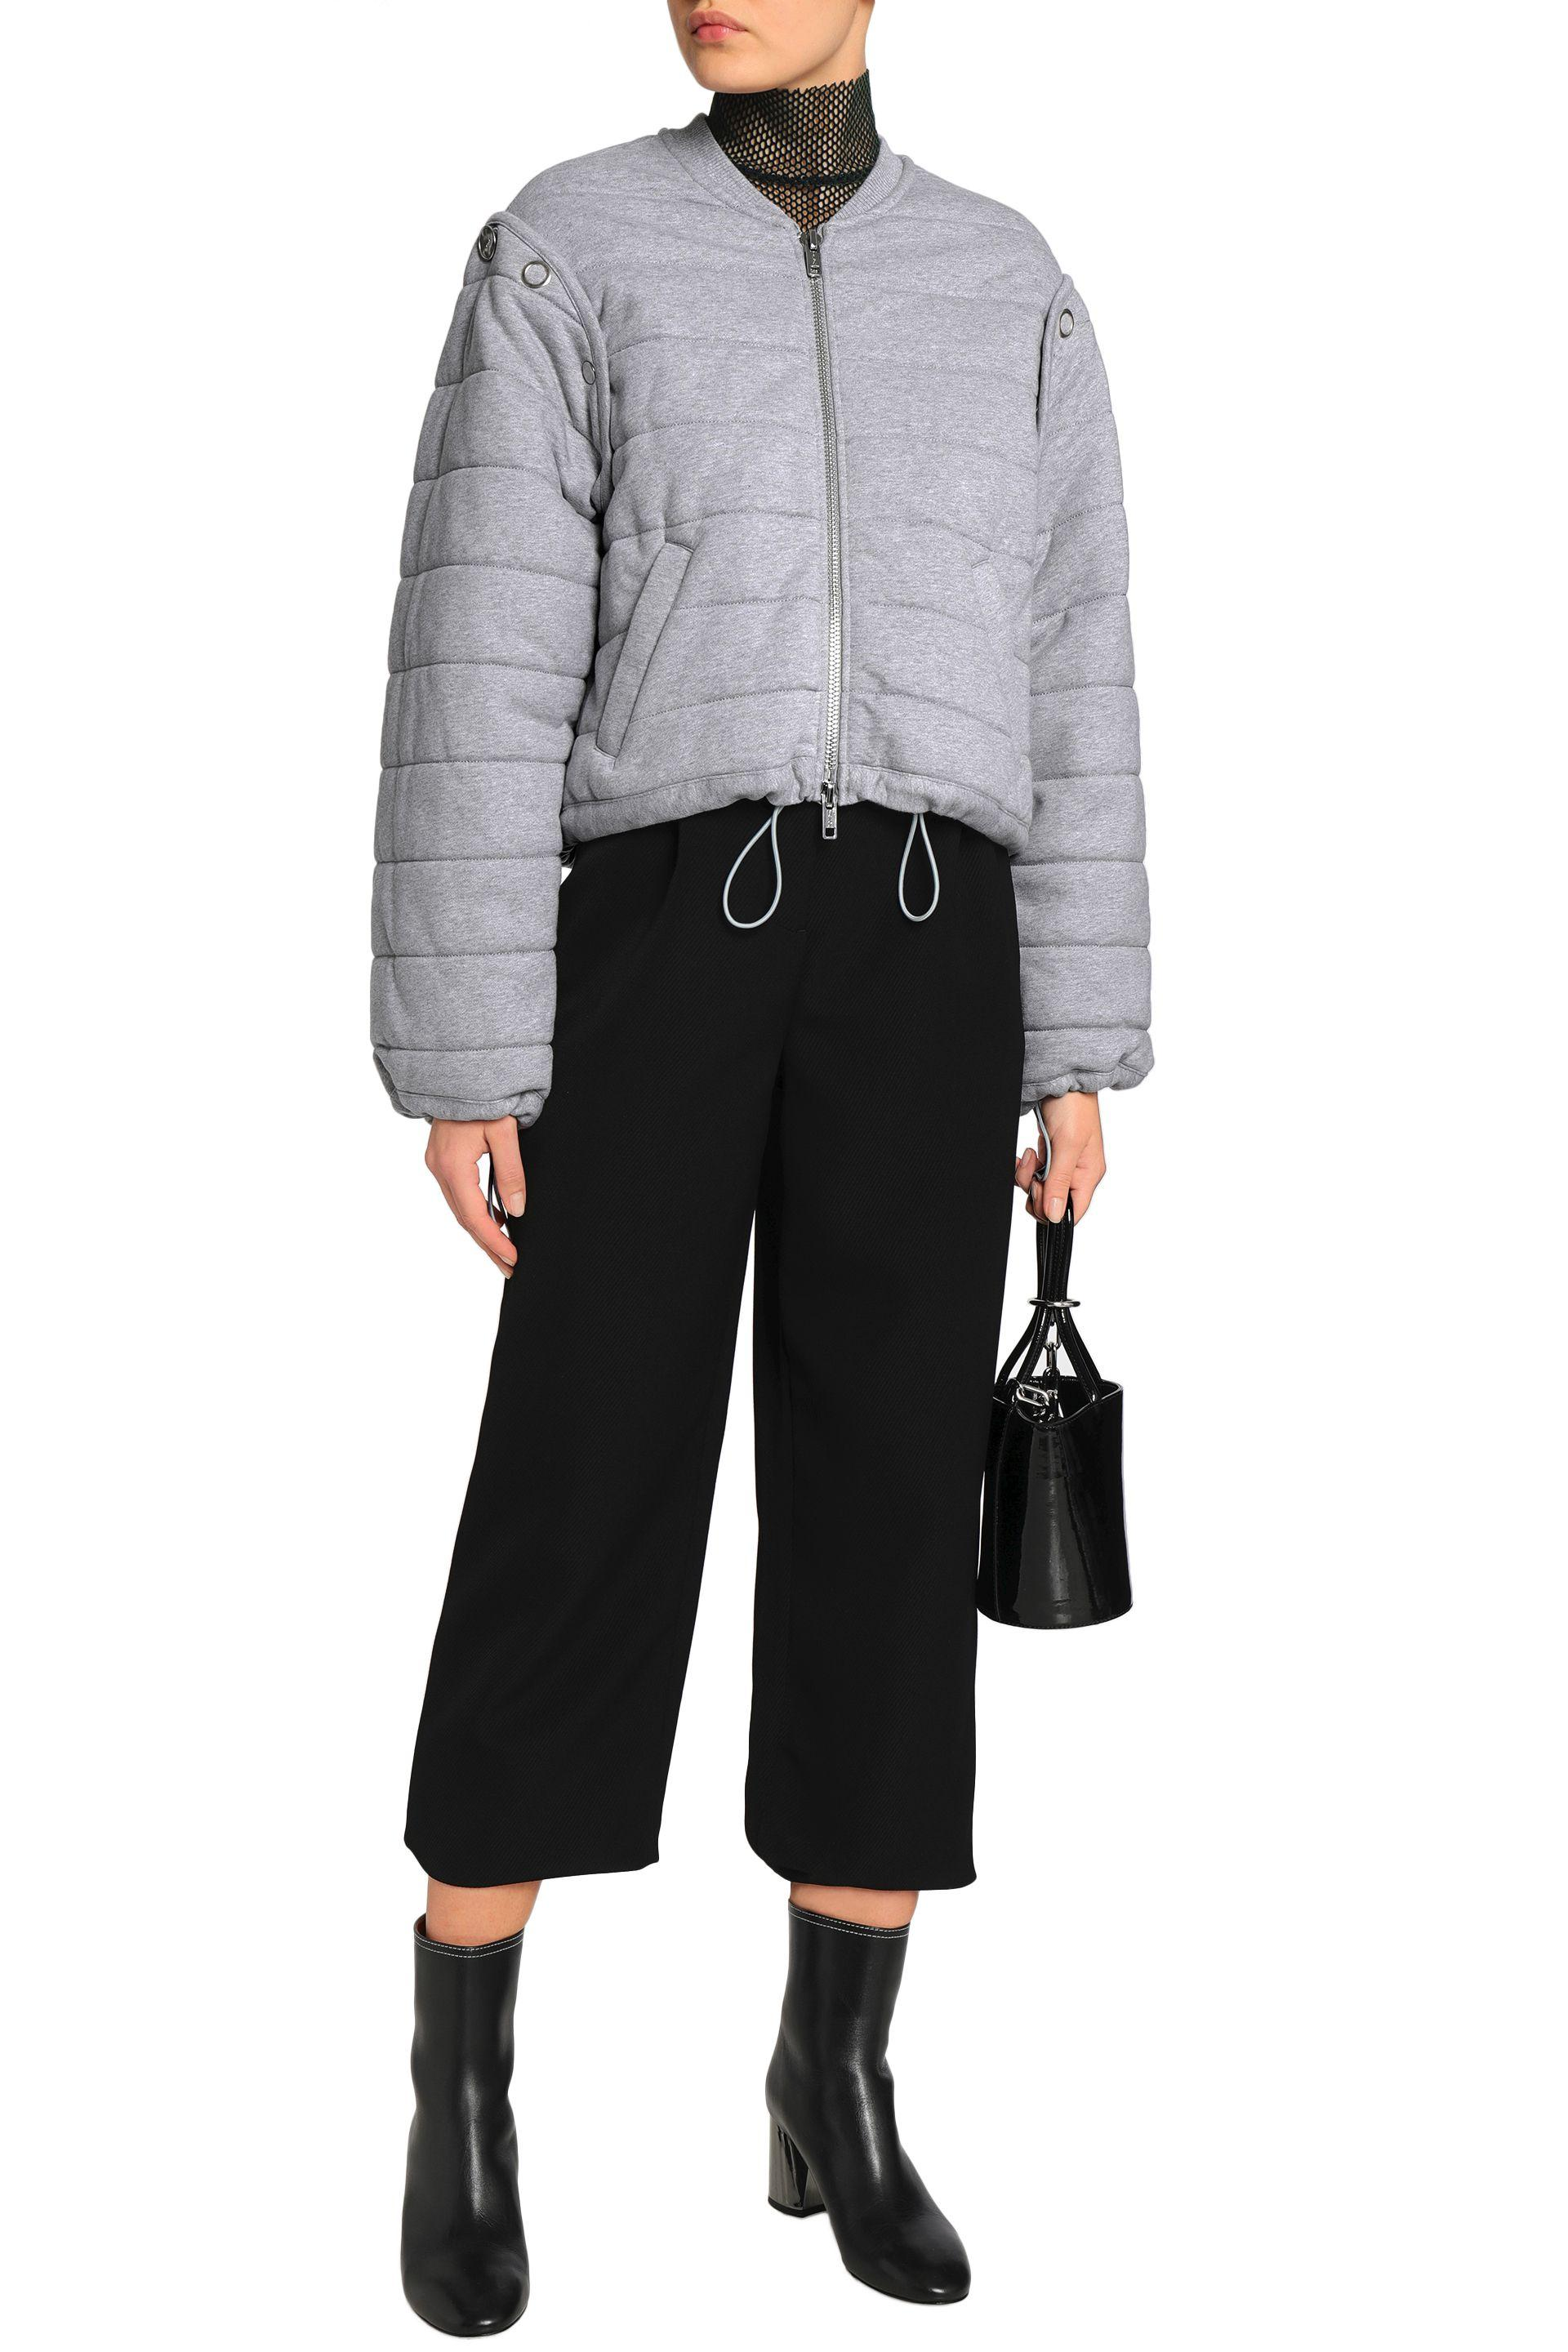 5ee7f0f647 3.1 Phillip Lim Woman Convertible Quilted Cotton-jersey Bomber ...